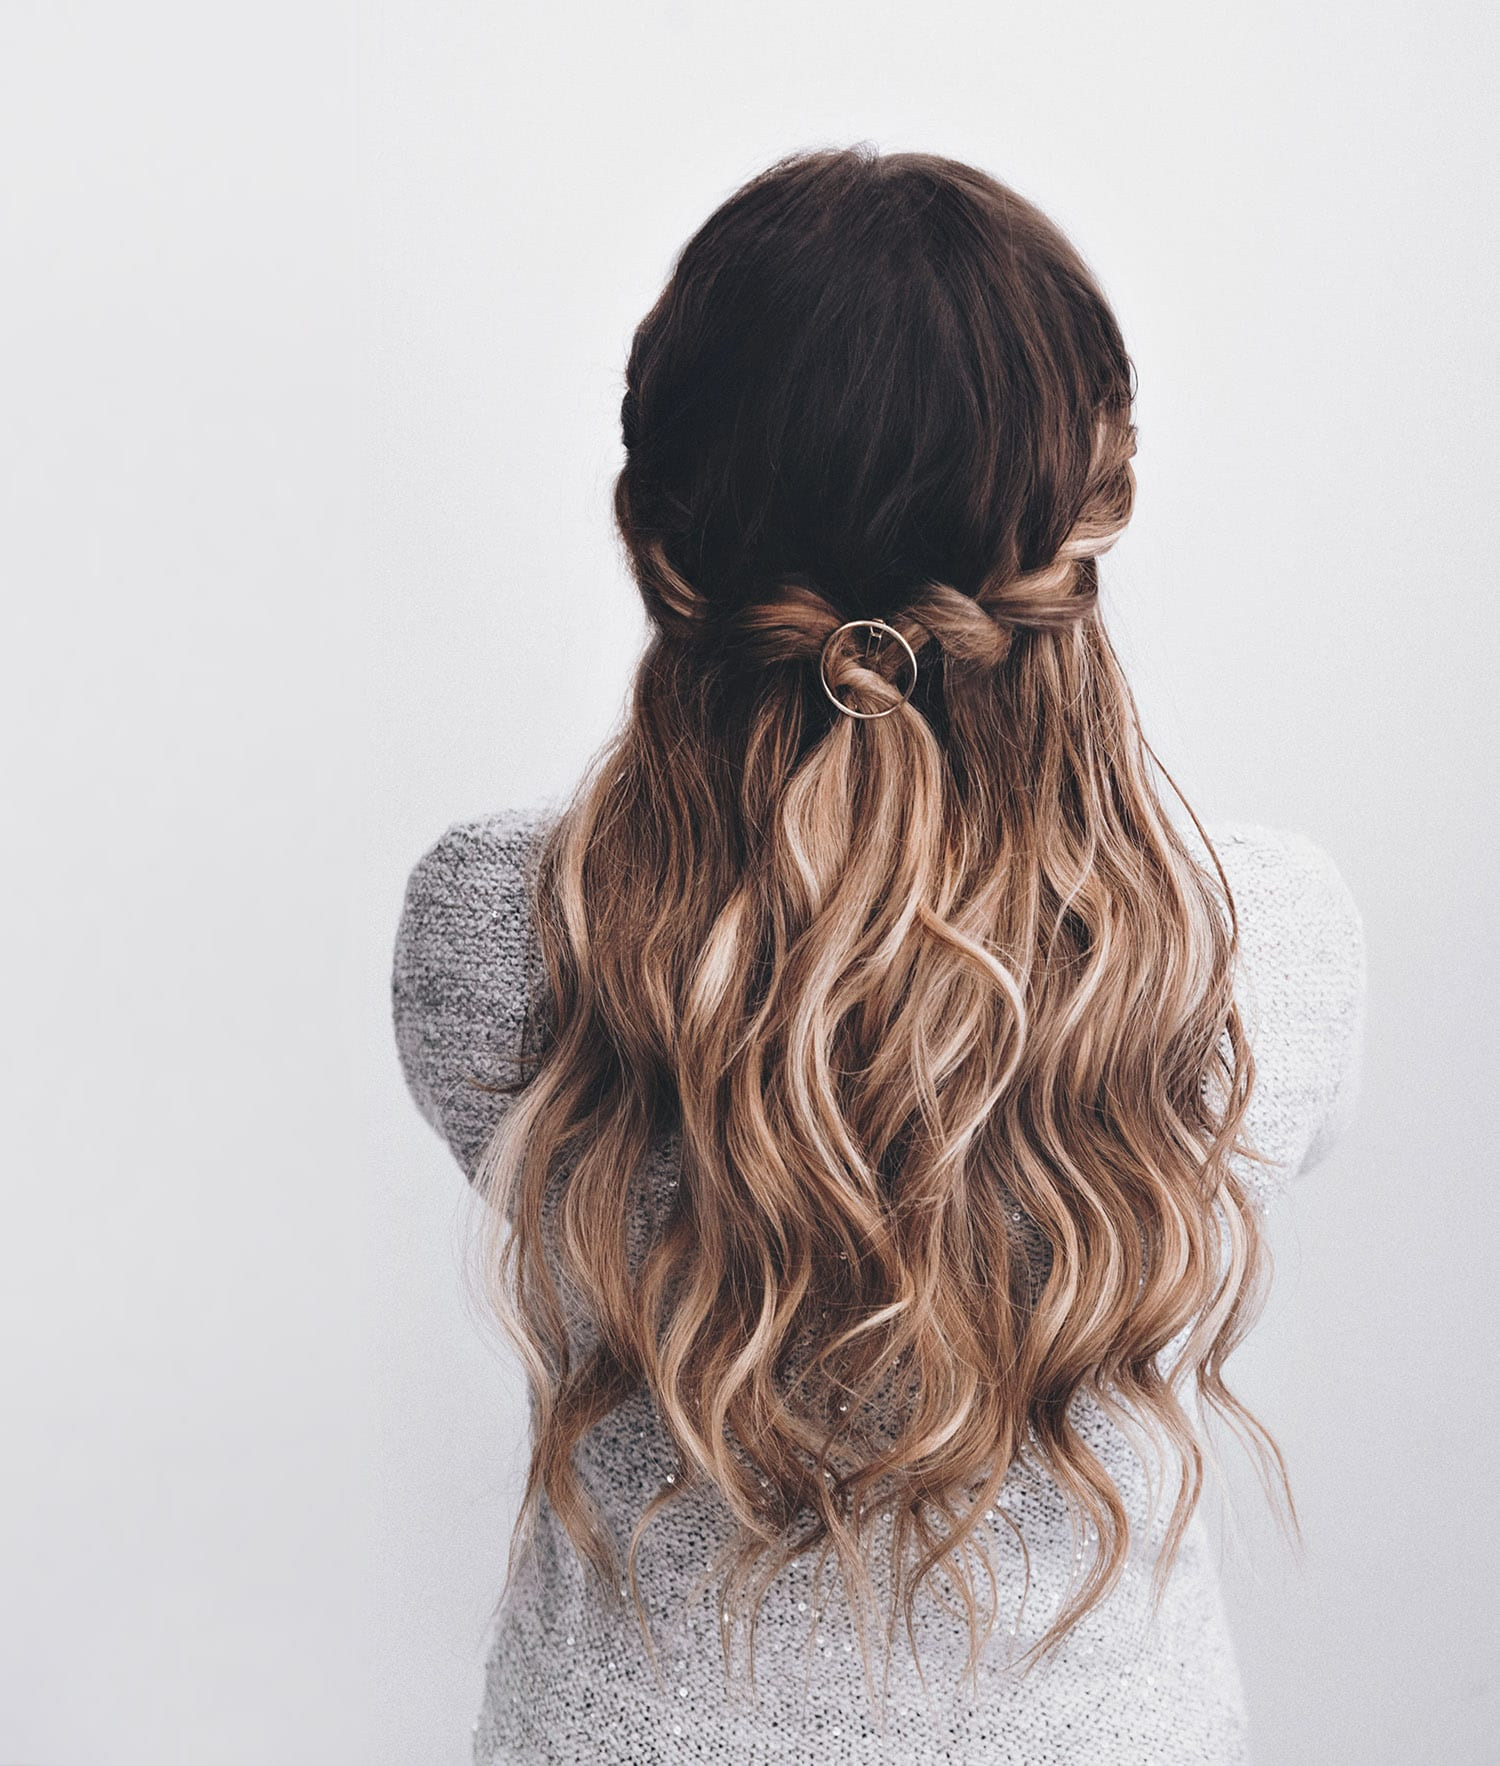 Woman with easy hairstyle - Faux waterfall braid